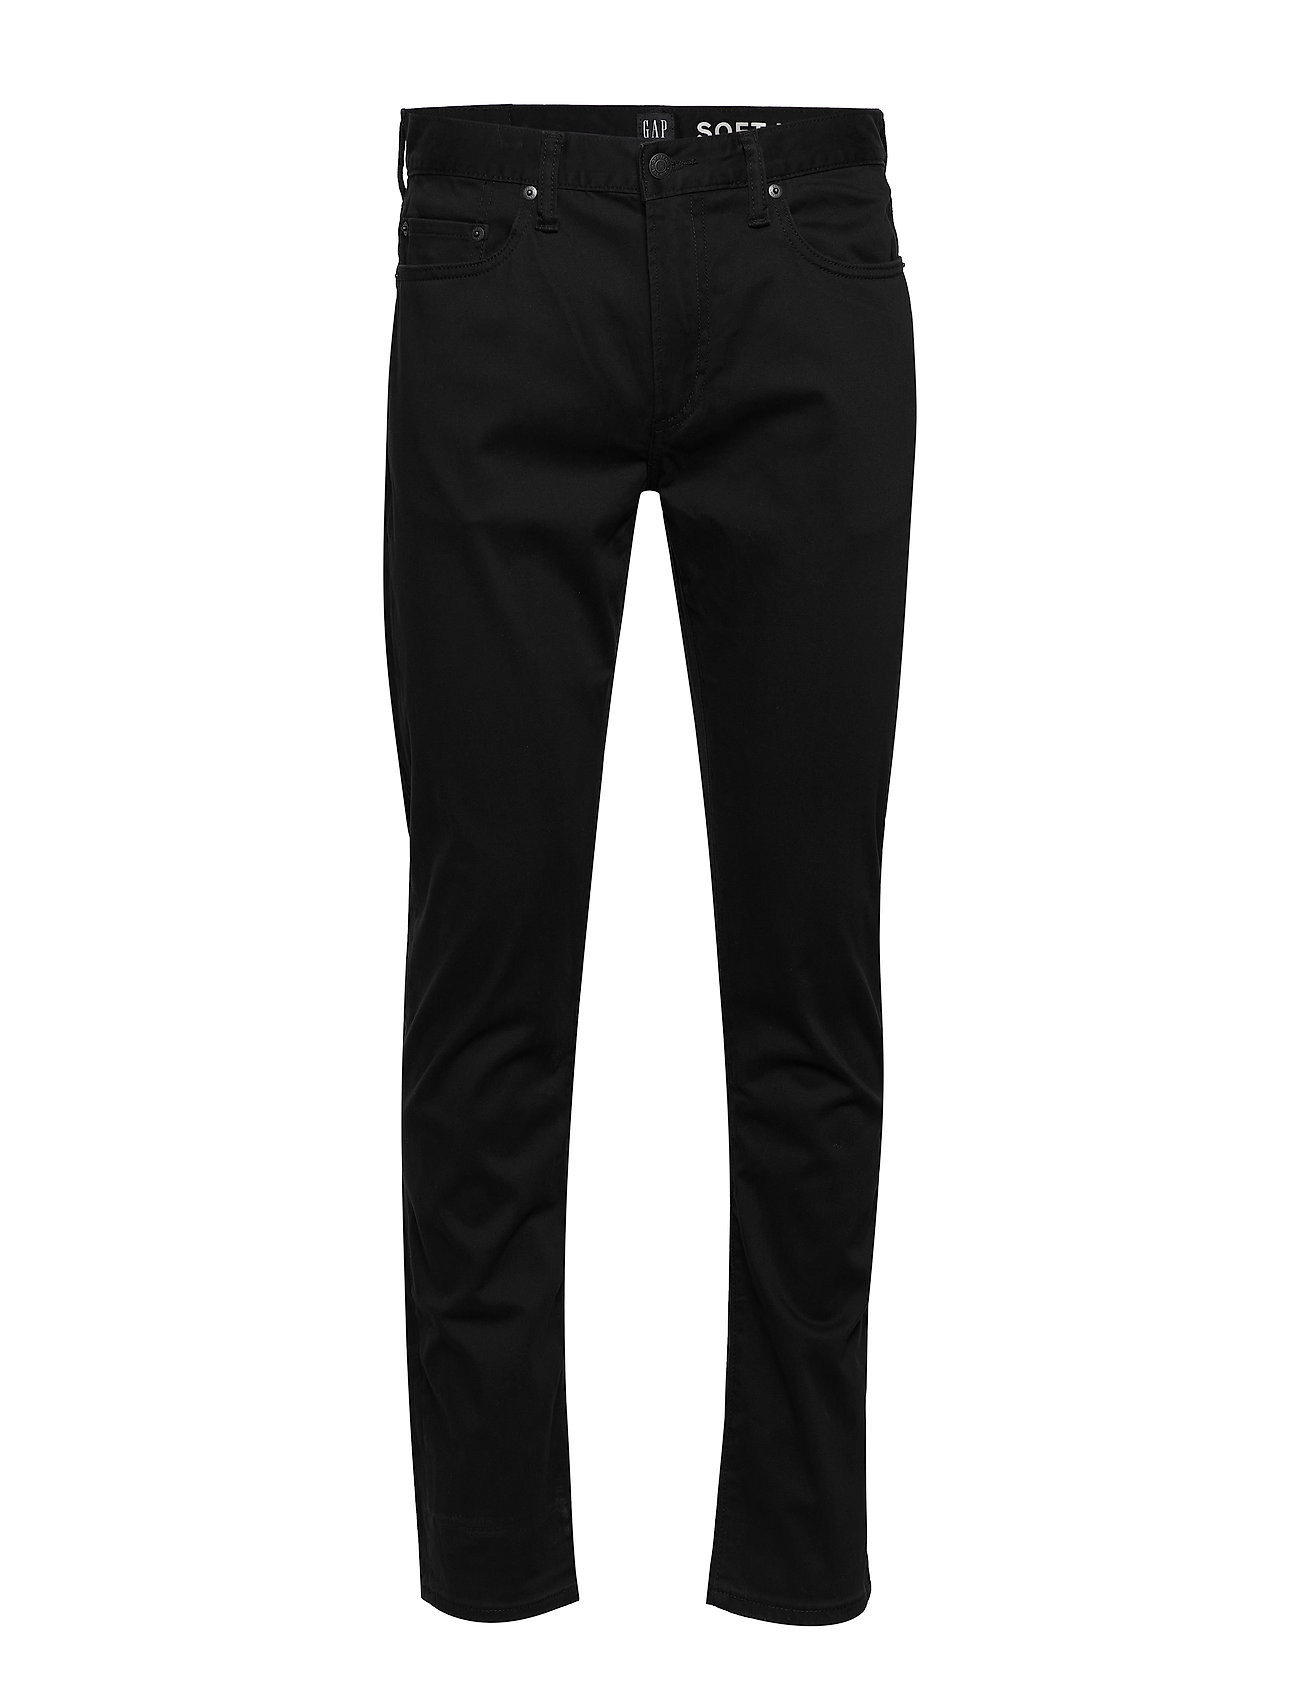 GAP Soft Wear Slim Jeans with GapFlex - TRUE BLACK